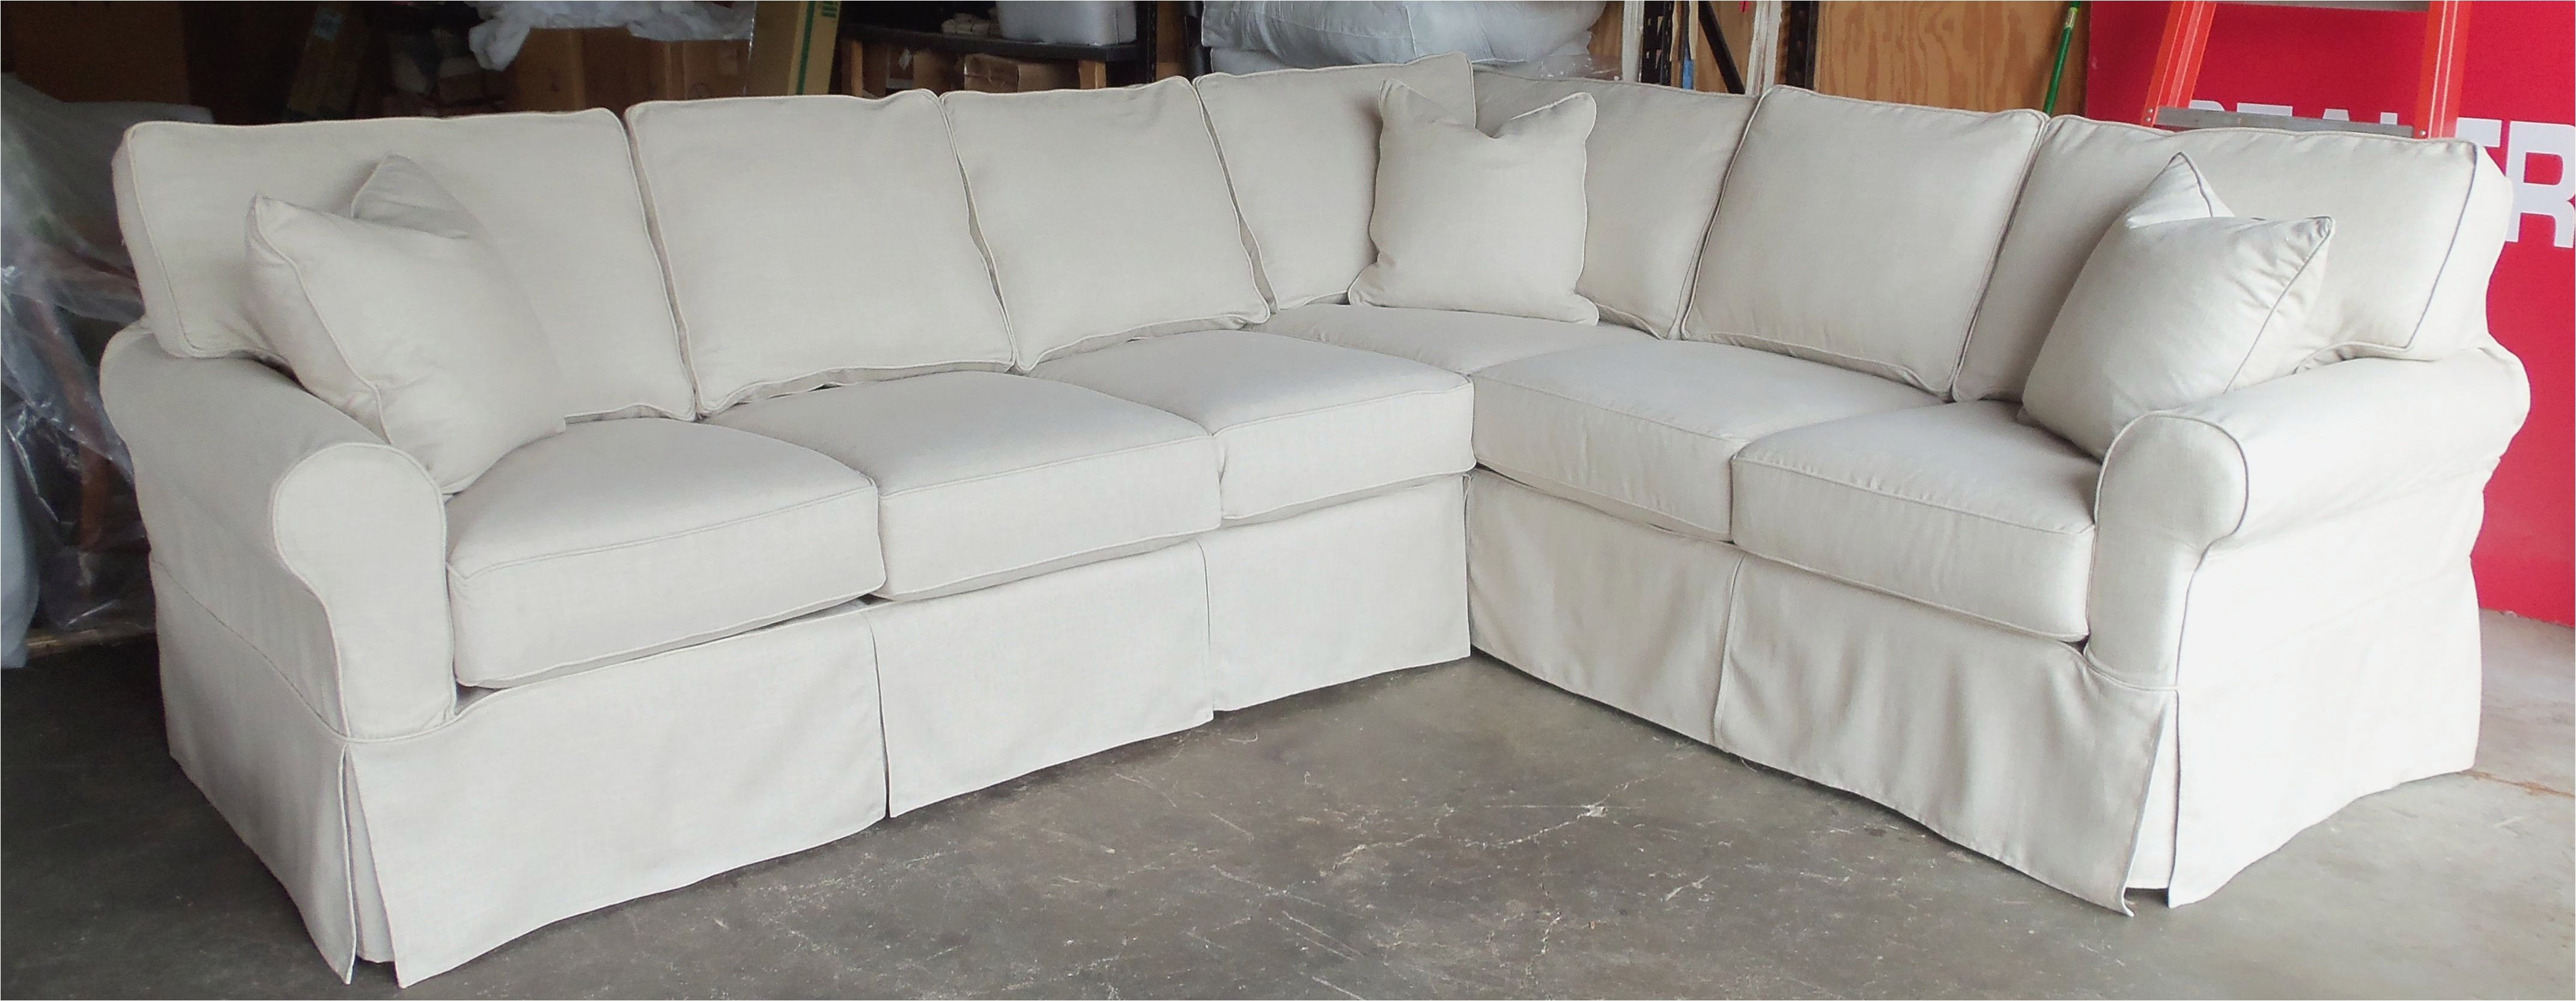 10 Slip Covers For Sectional Sofas Most Of The Brilliant And Also Lovely Sectional Couch Cover Sectional Sofa With Recliner Sectional Sofa Slipcovers